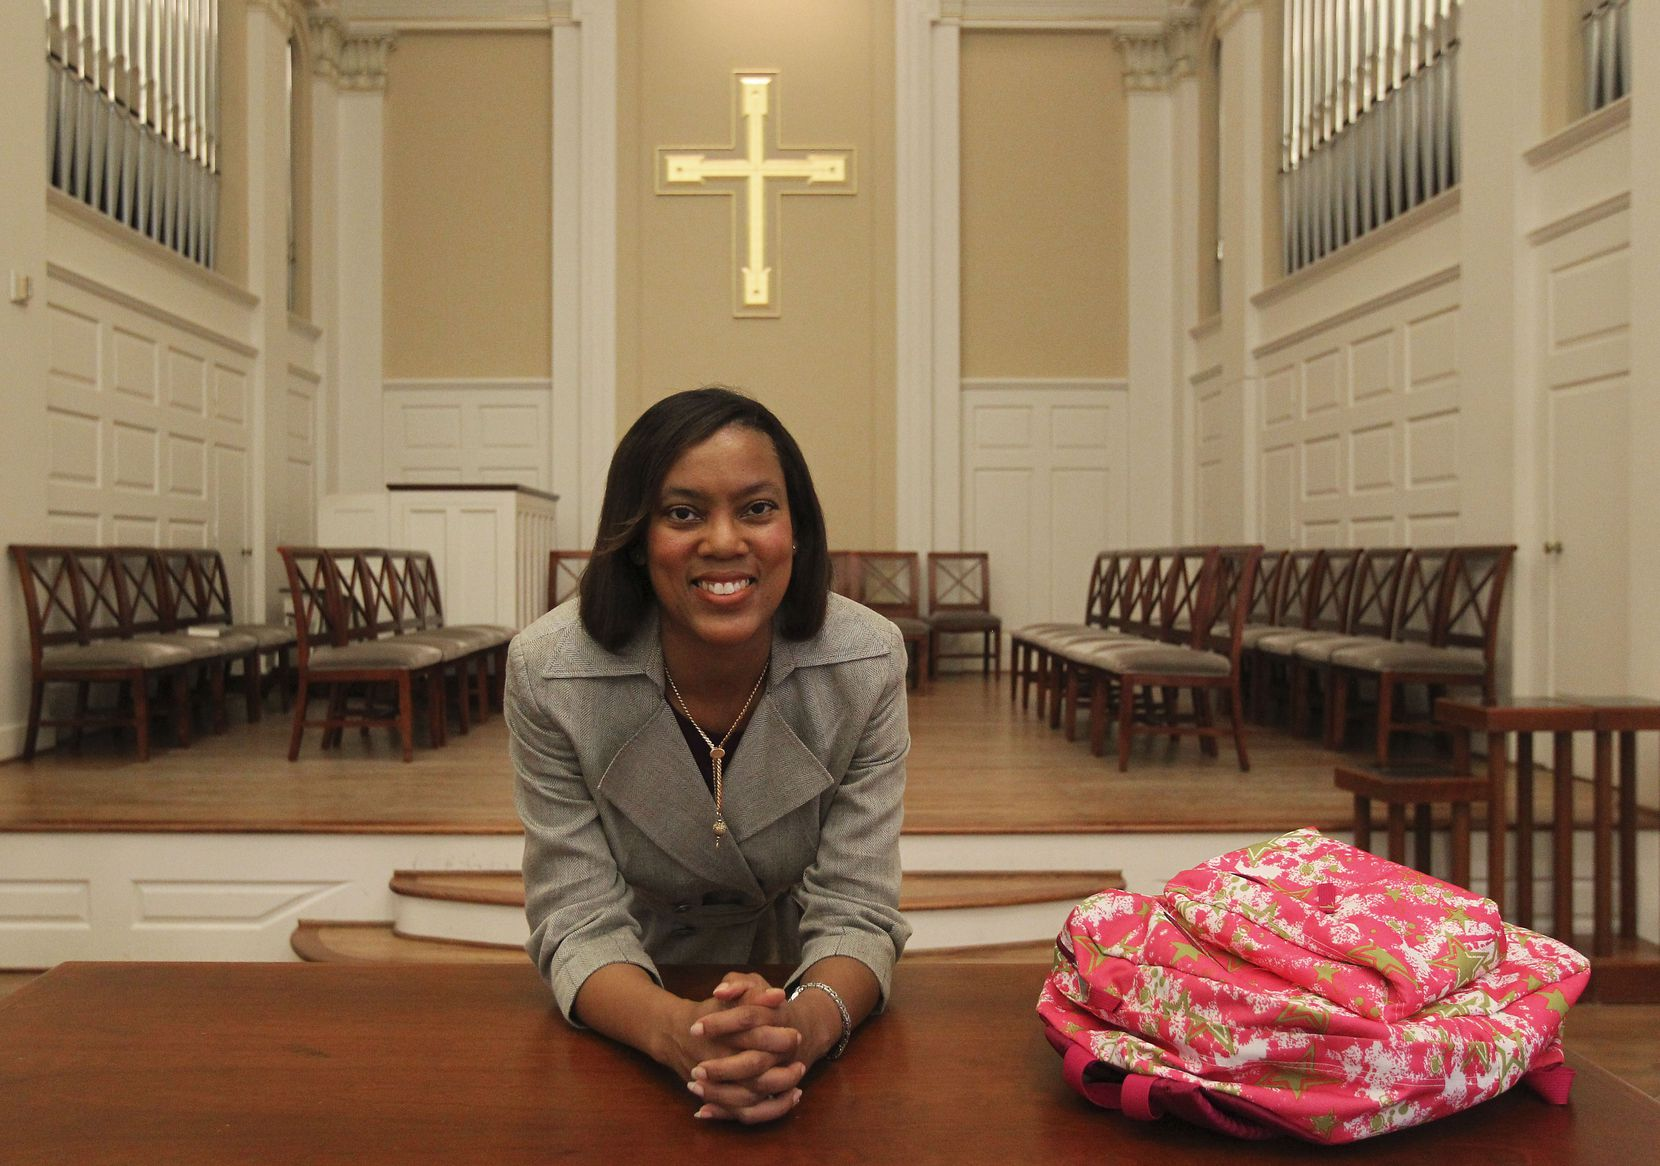 In a year that gave so many Black Americans reasons to lose hope, Yvette R. Blair-Lavallais said she has noticed that her congregation has become more faithful.